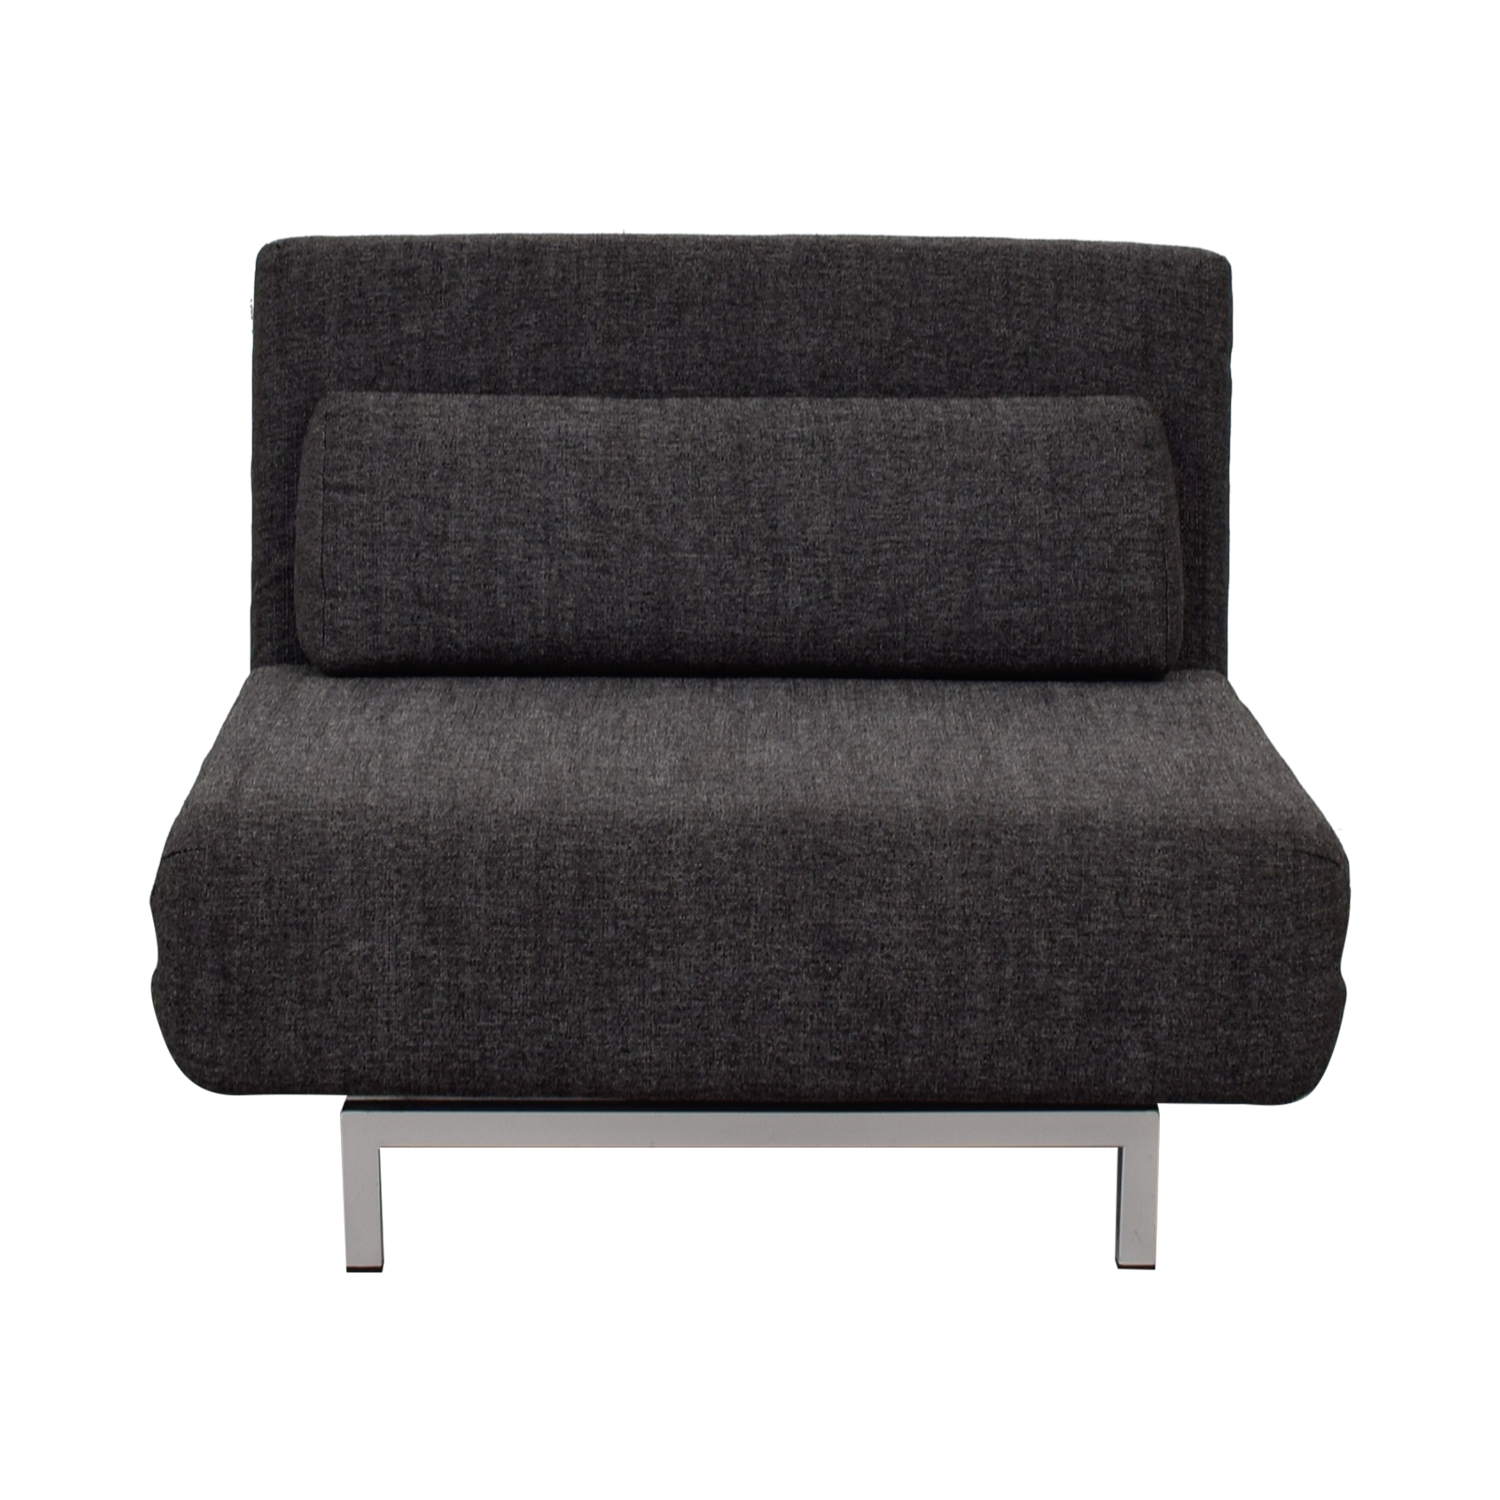 I Do I Do  Charcoal Gray Tweed Convertible Accent Chair on sale